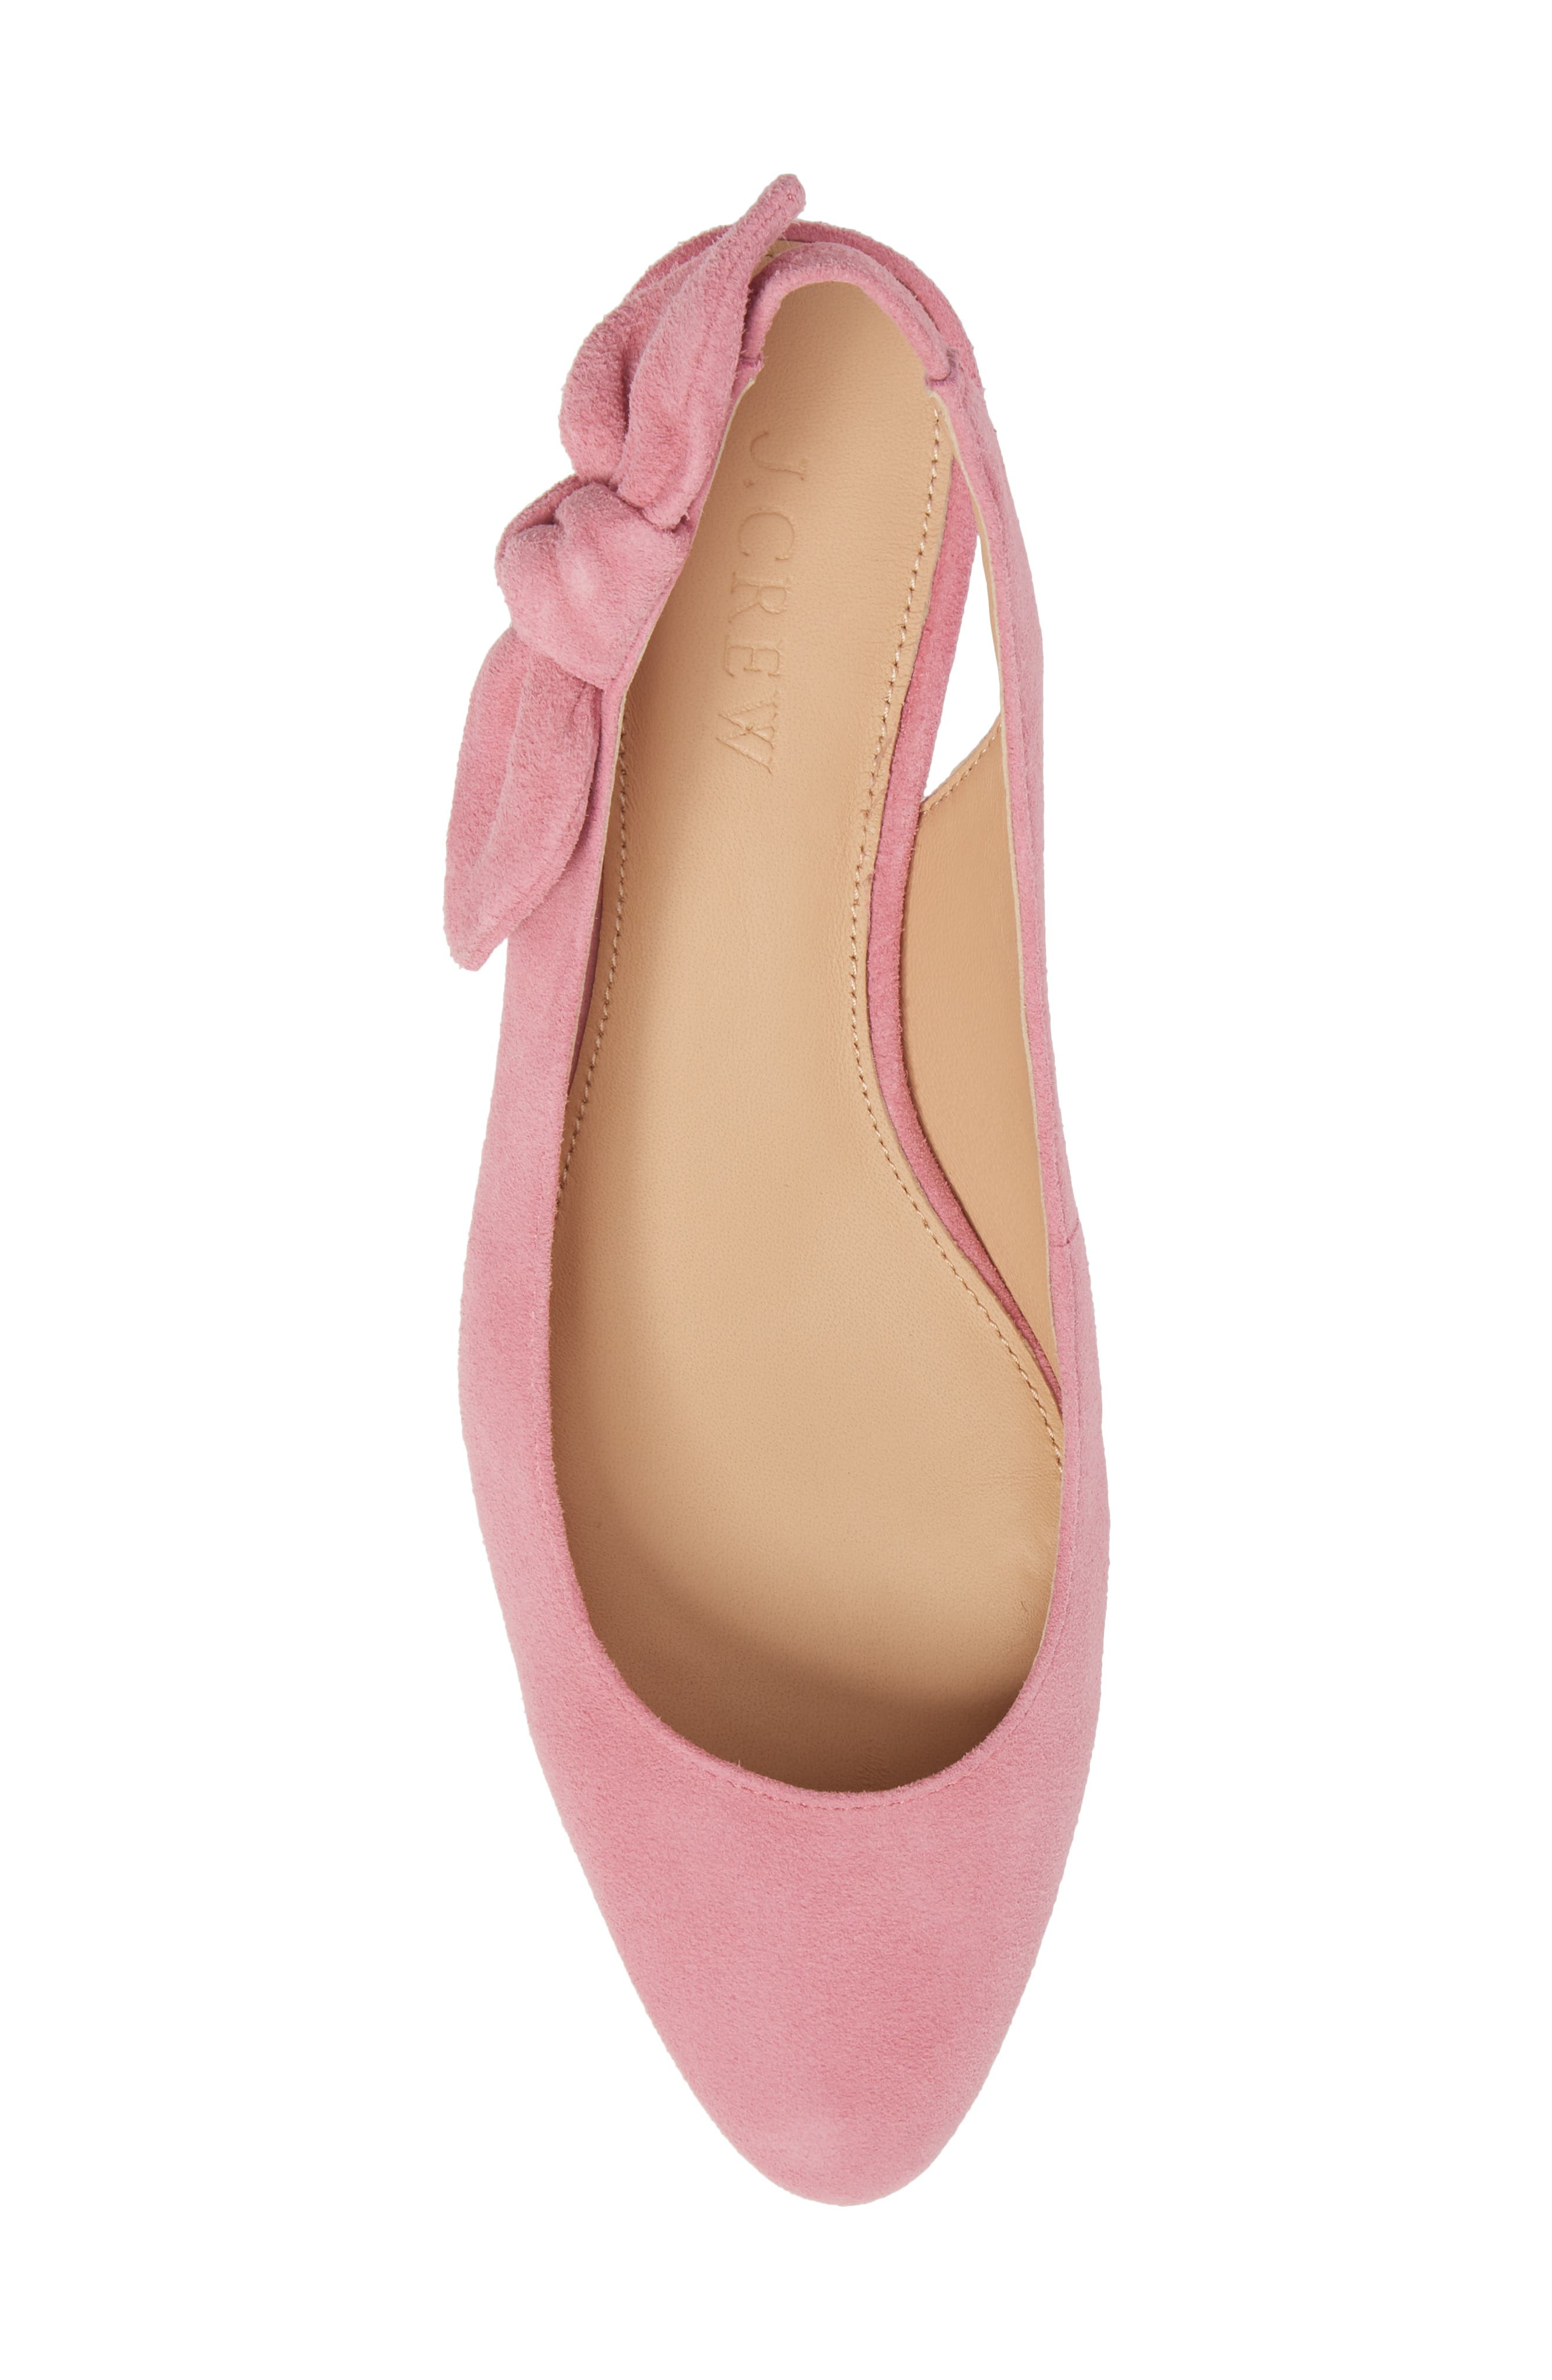 Slingback Bow Pump,                             Alternate thumbnail 5, color,                             Winter Coral Fabric